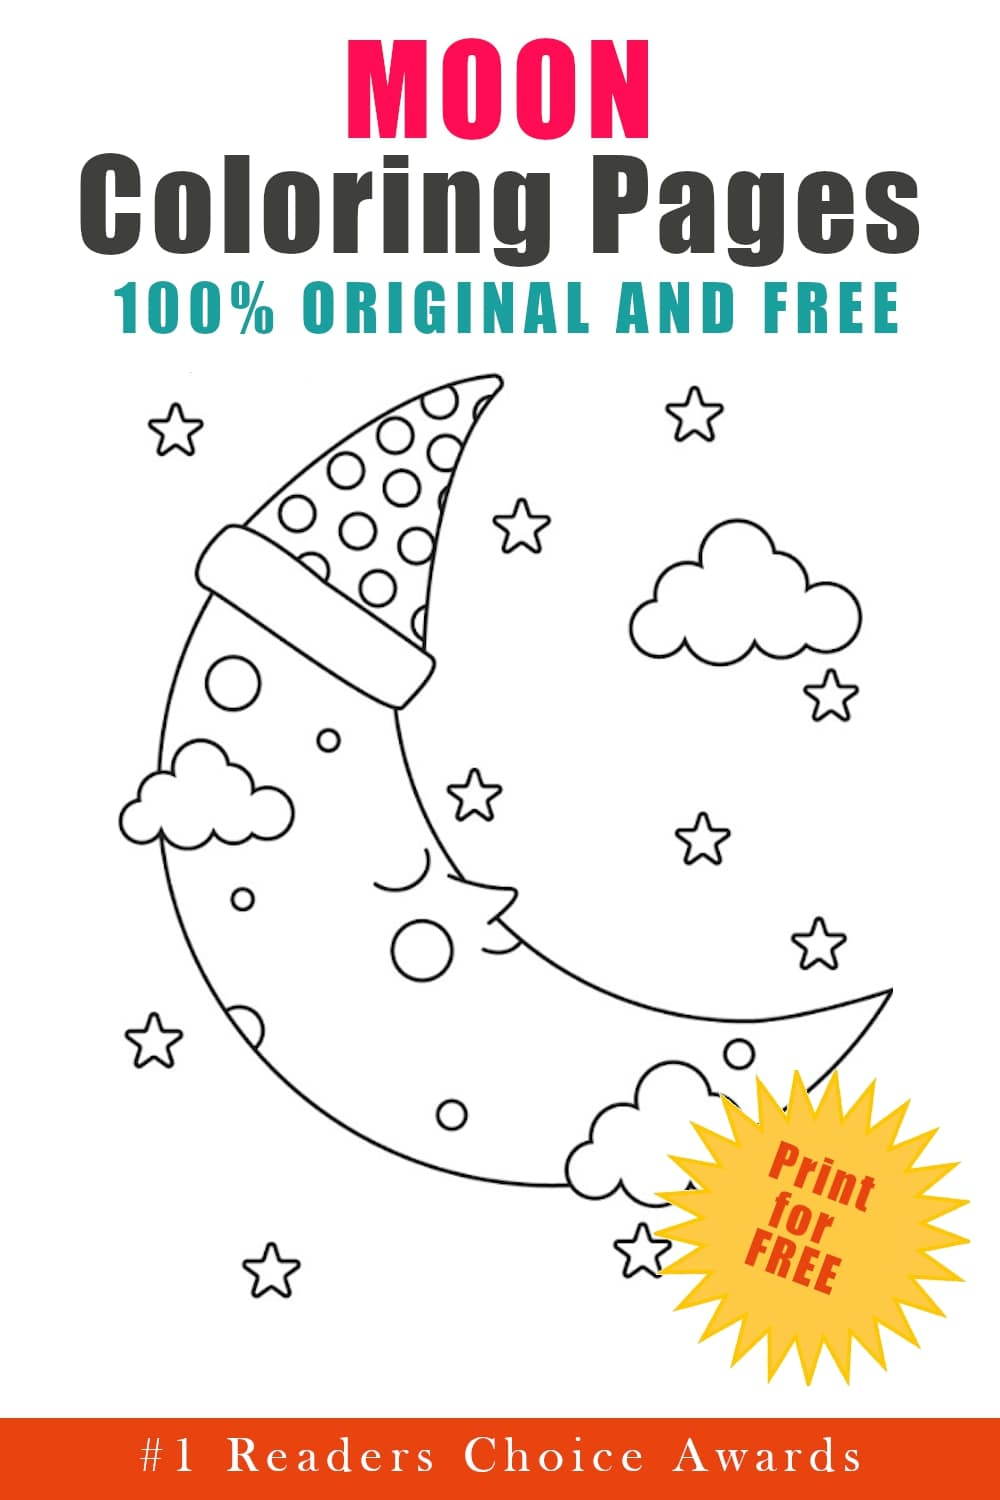 original and free moon coloring pages